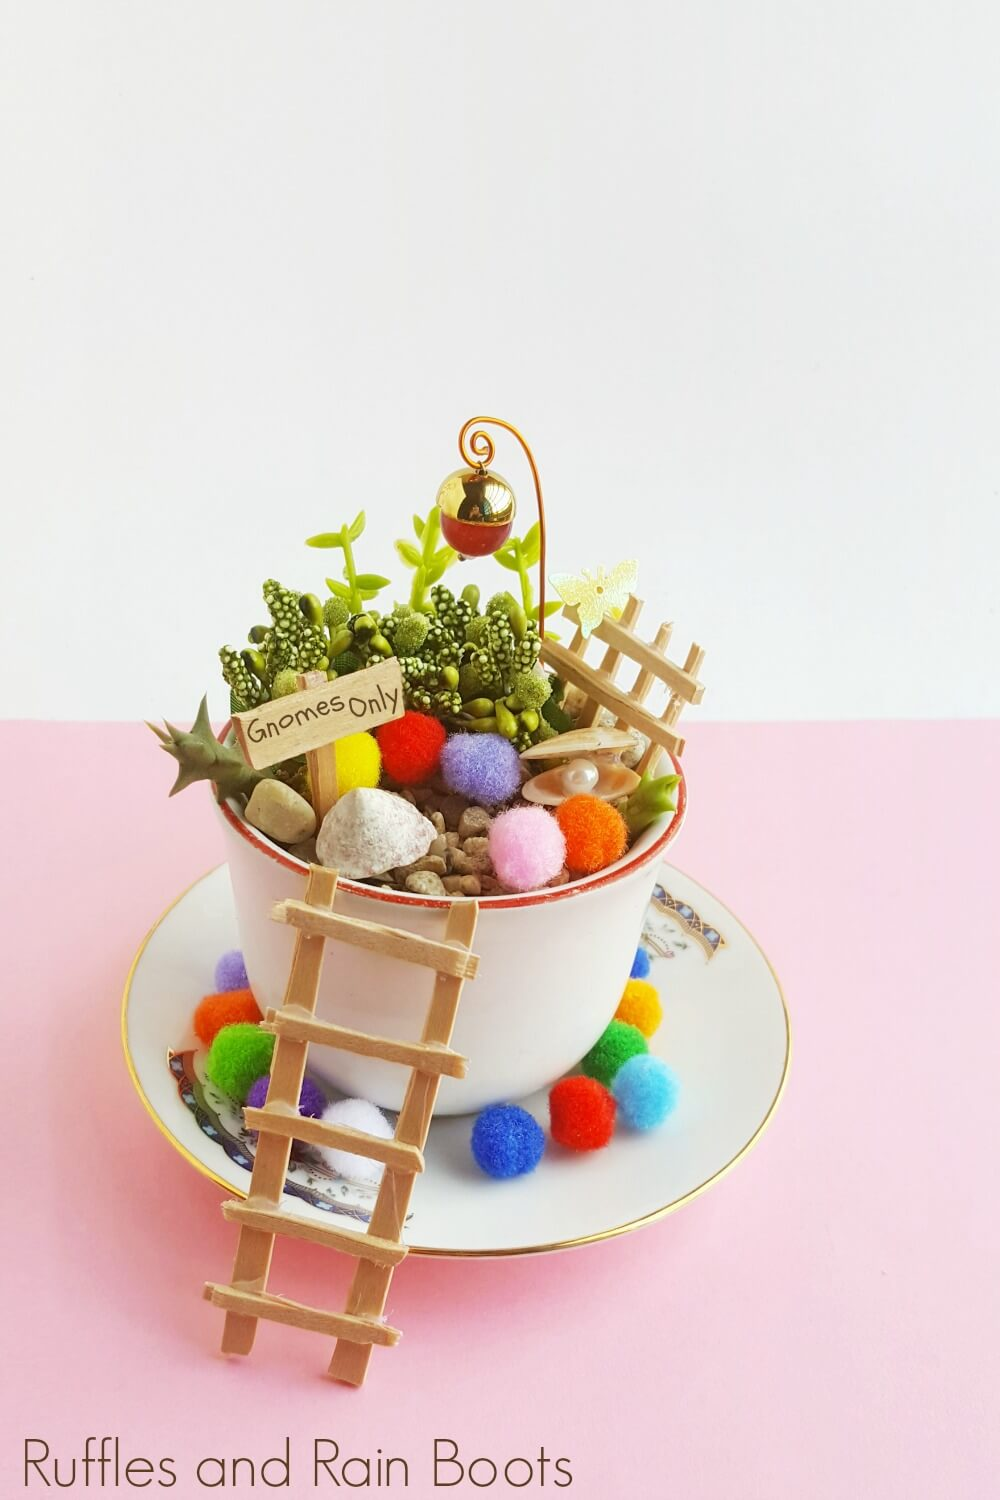 Gnome Teacup Garden gnome craft for kids on a pink and white background